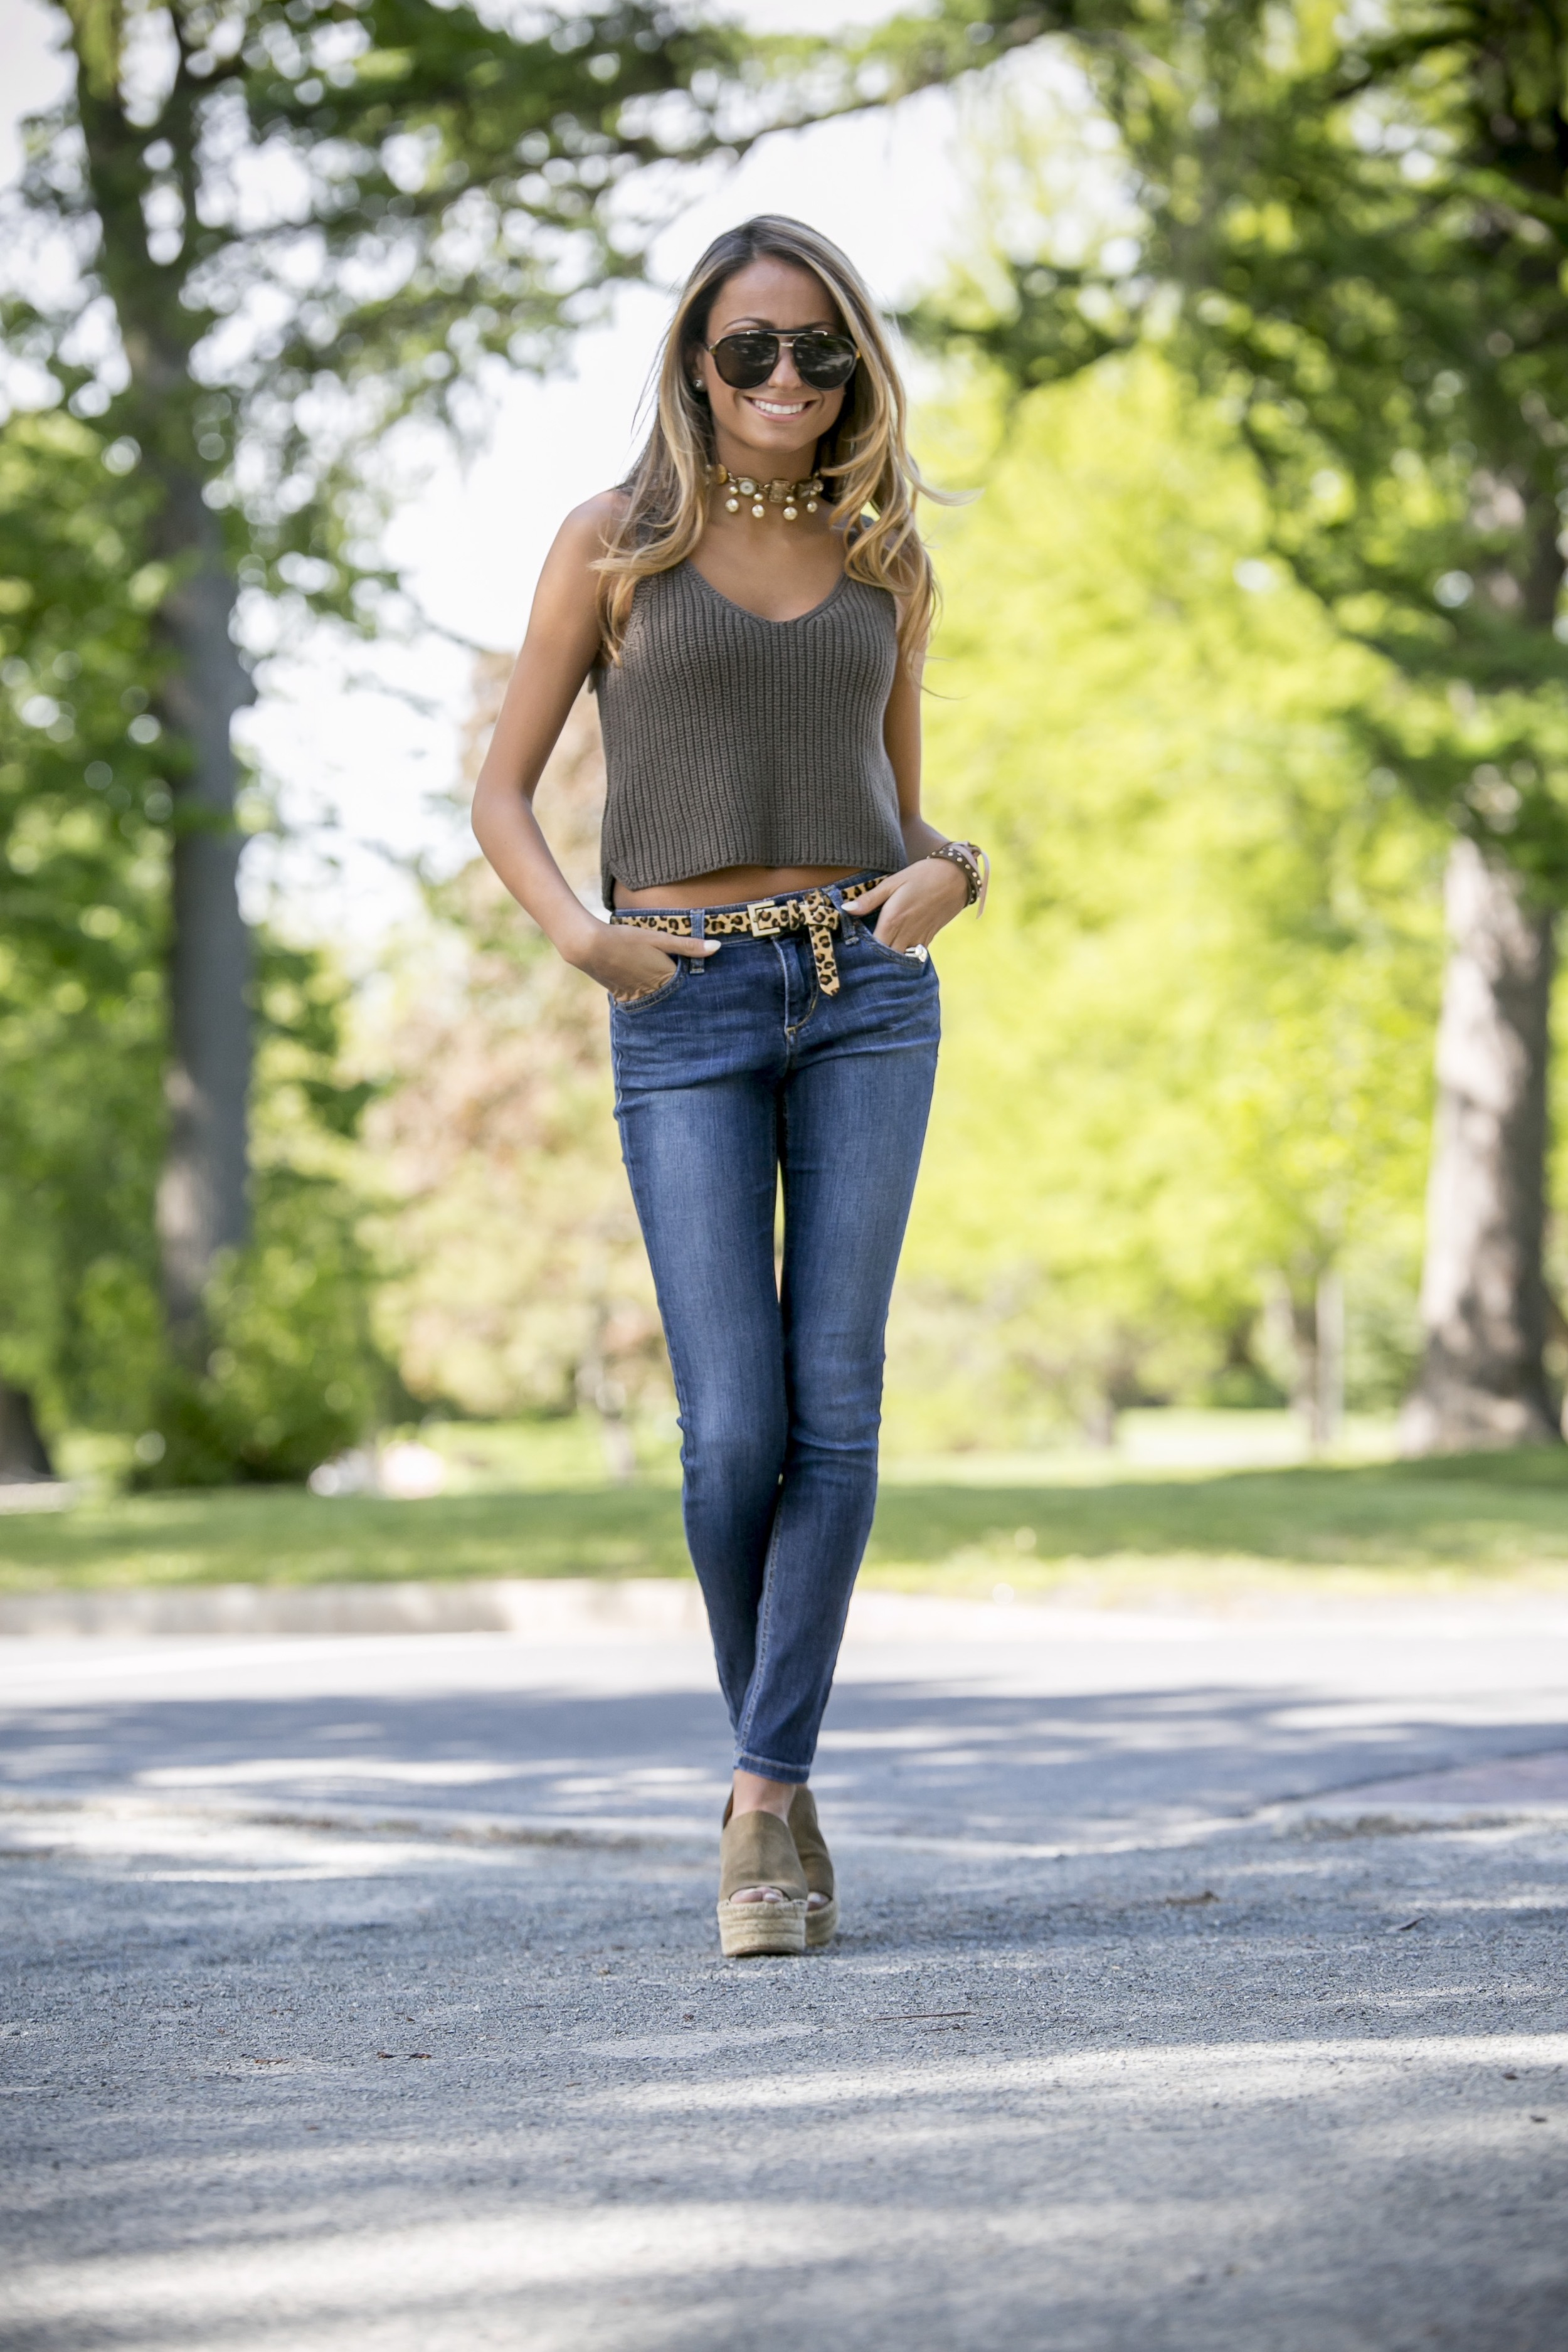 Top: Intermix |Jeans: Joe's Jeans |Wedges: Chloe     Dino Petrocelli Photography